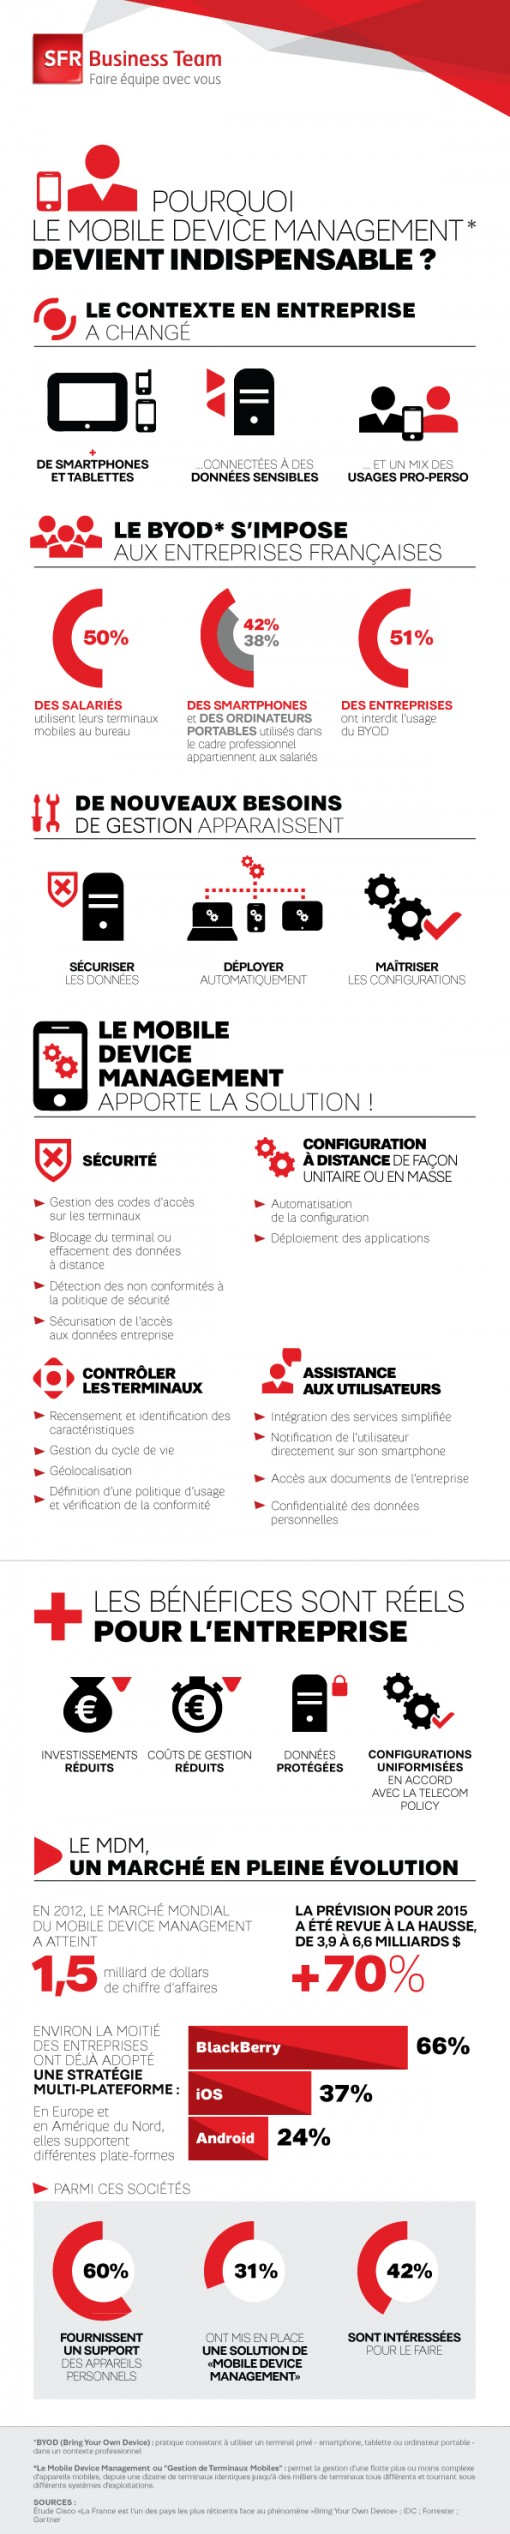 Infographie - Mobile Device Management